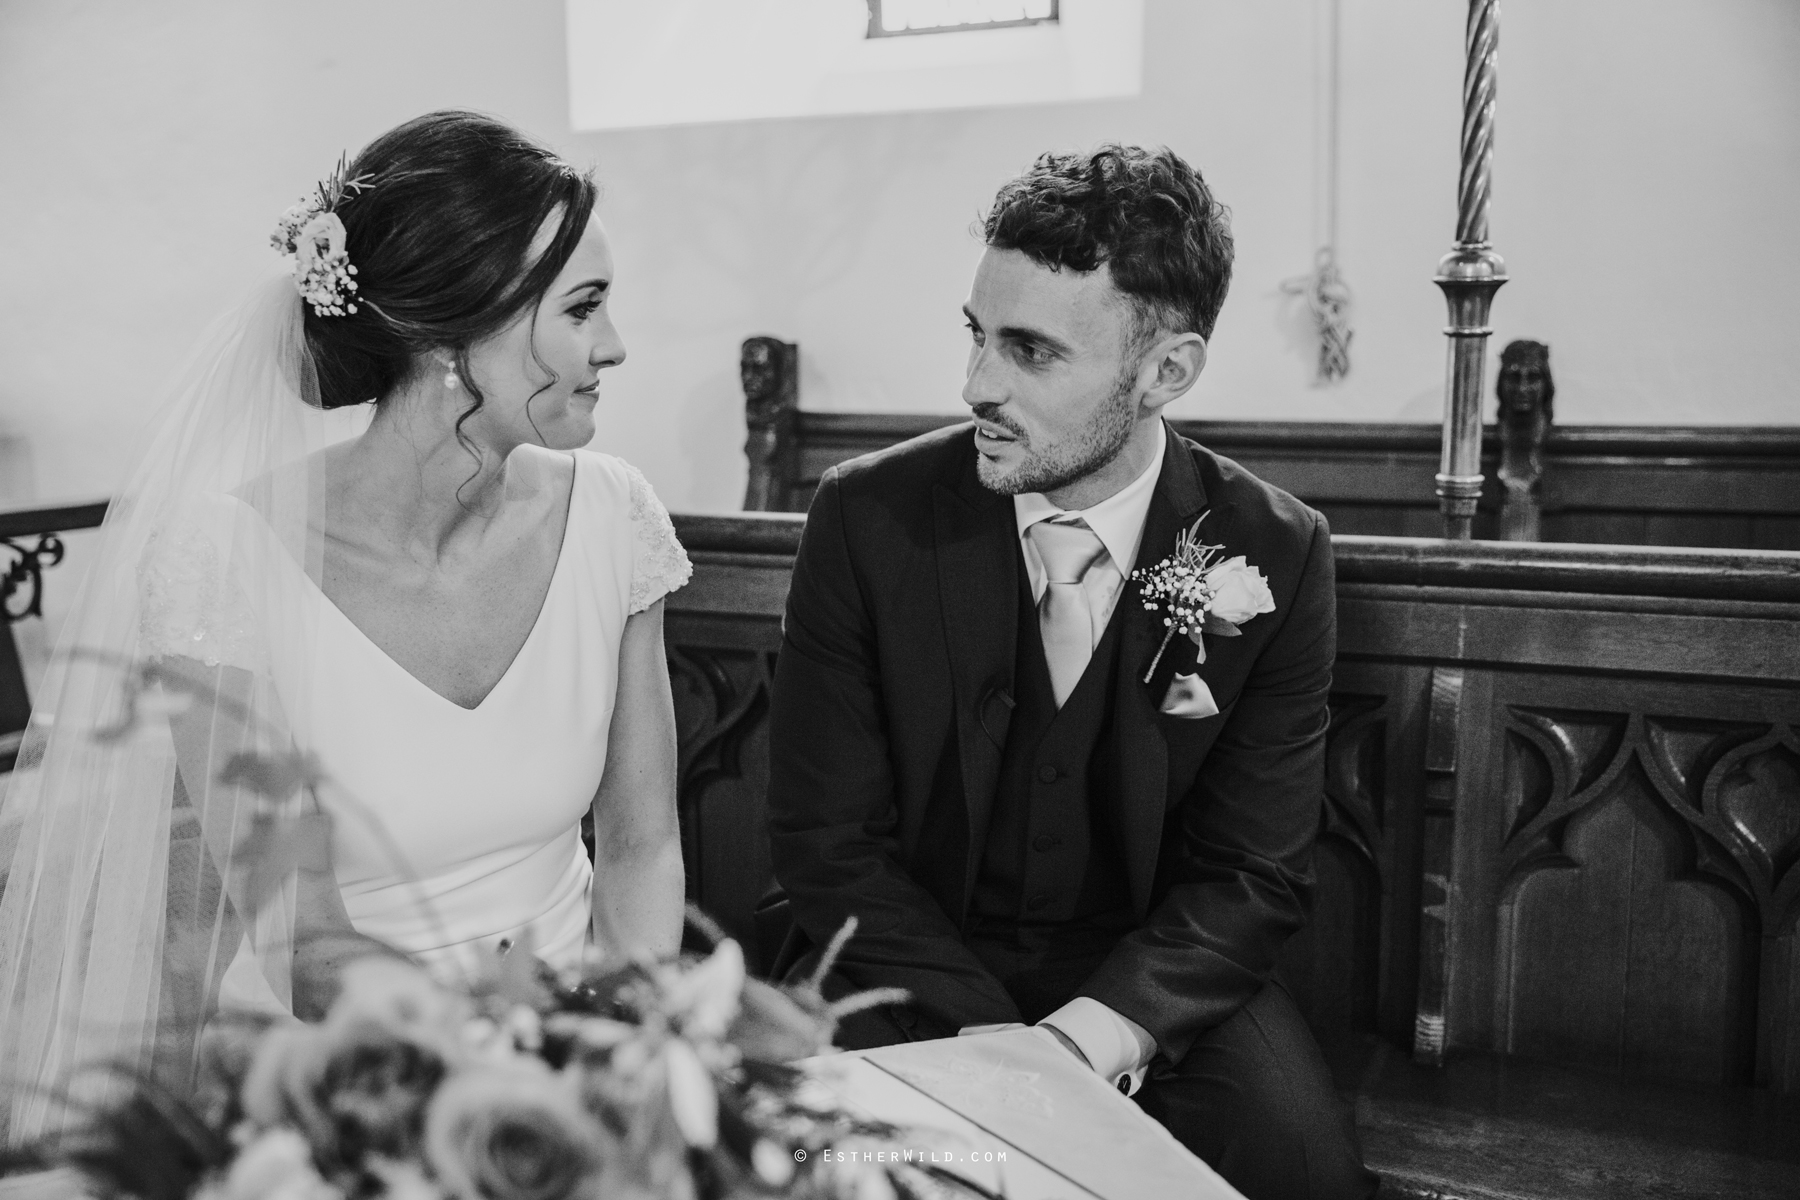 Wootton_Wedding_Copyright_Esther_Wild_Photographer_IMG_1160-2.jpg